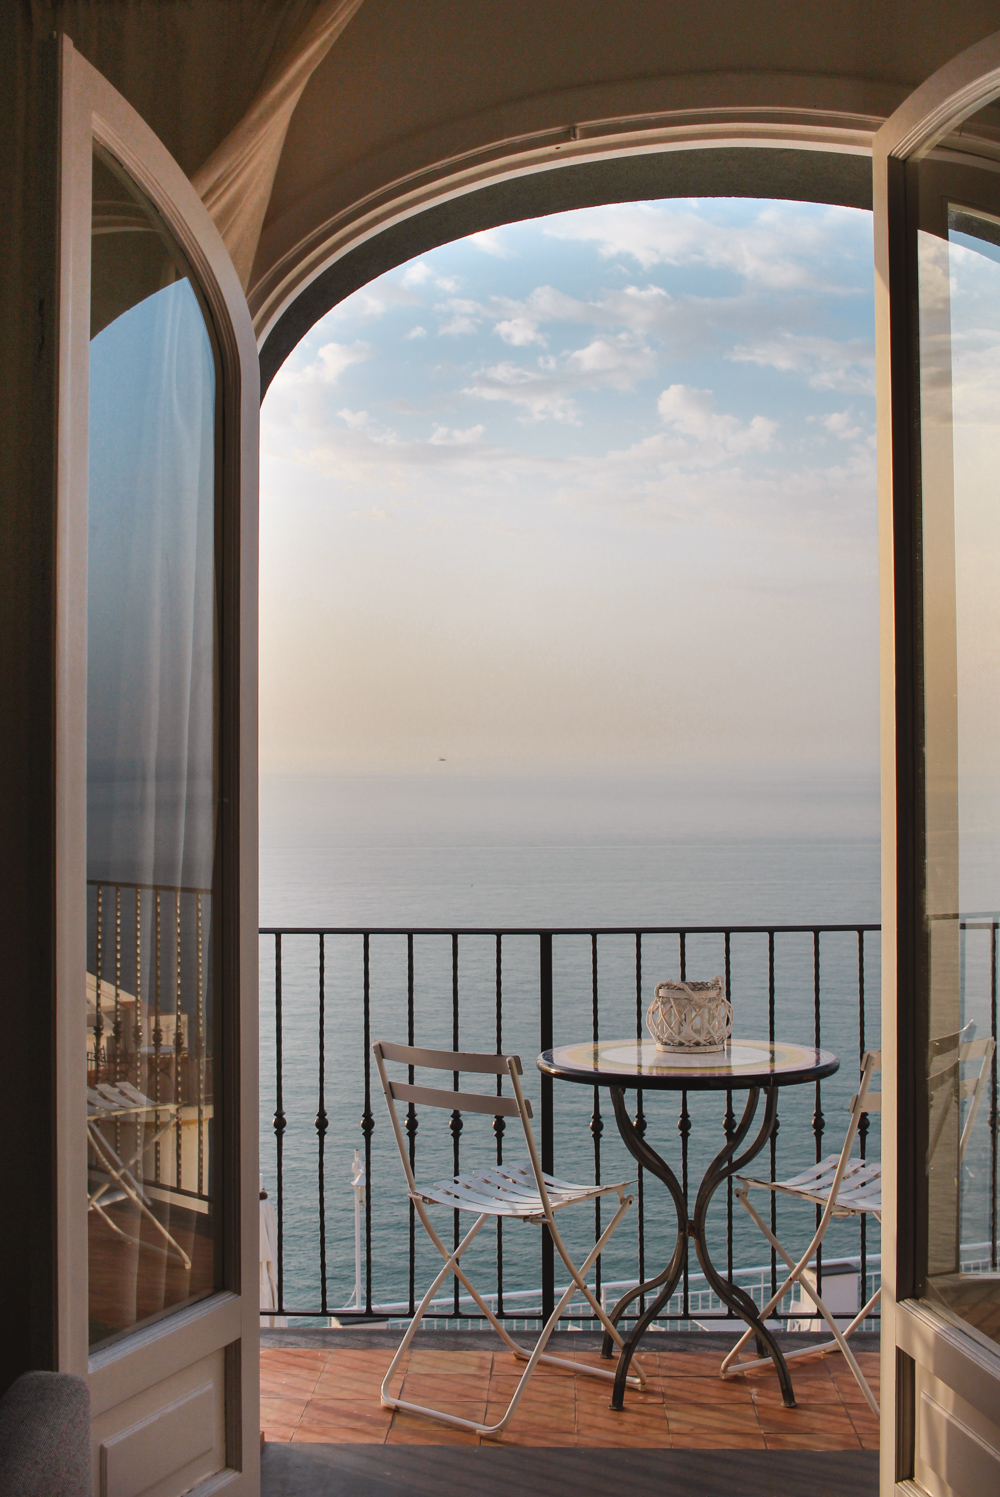 Where to stay in Praiano, Amalfi Coast